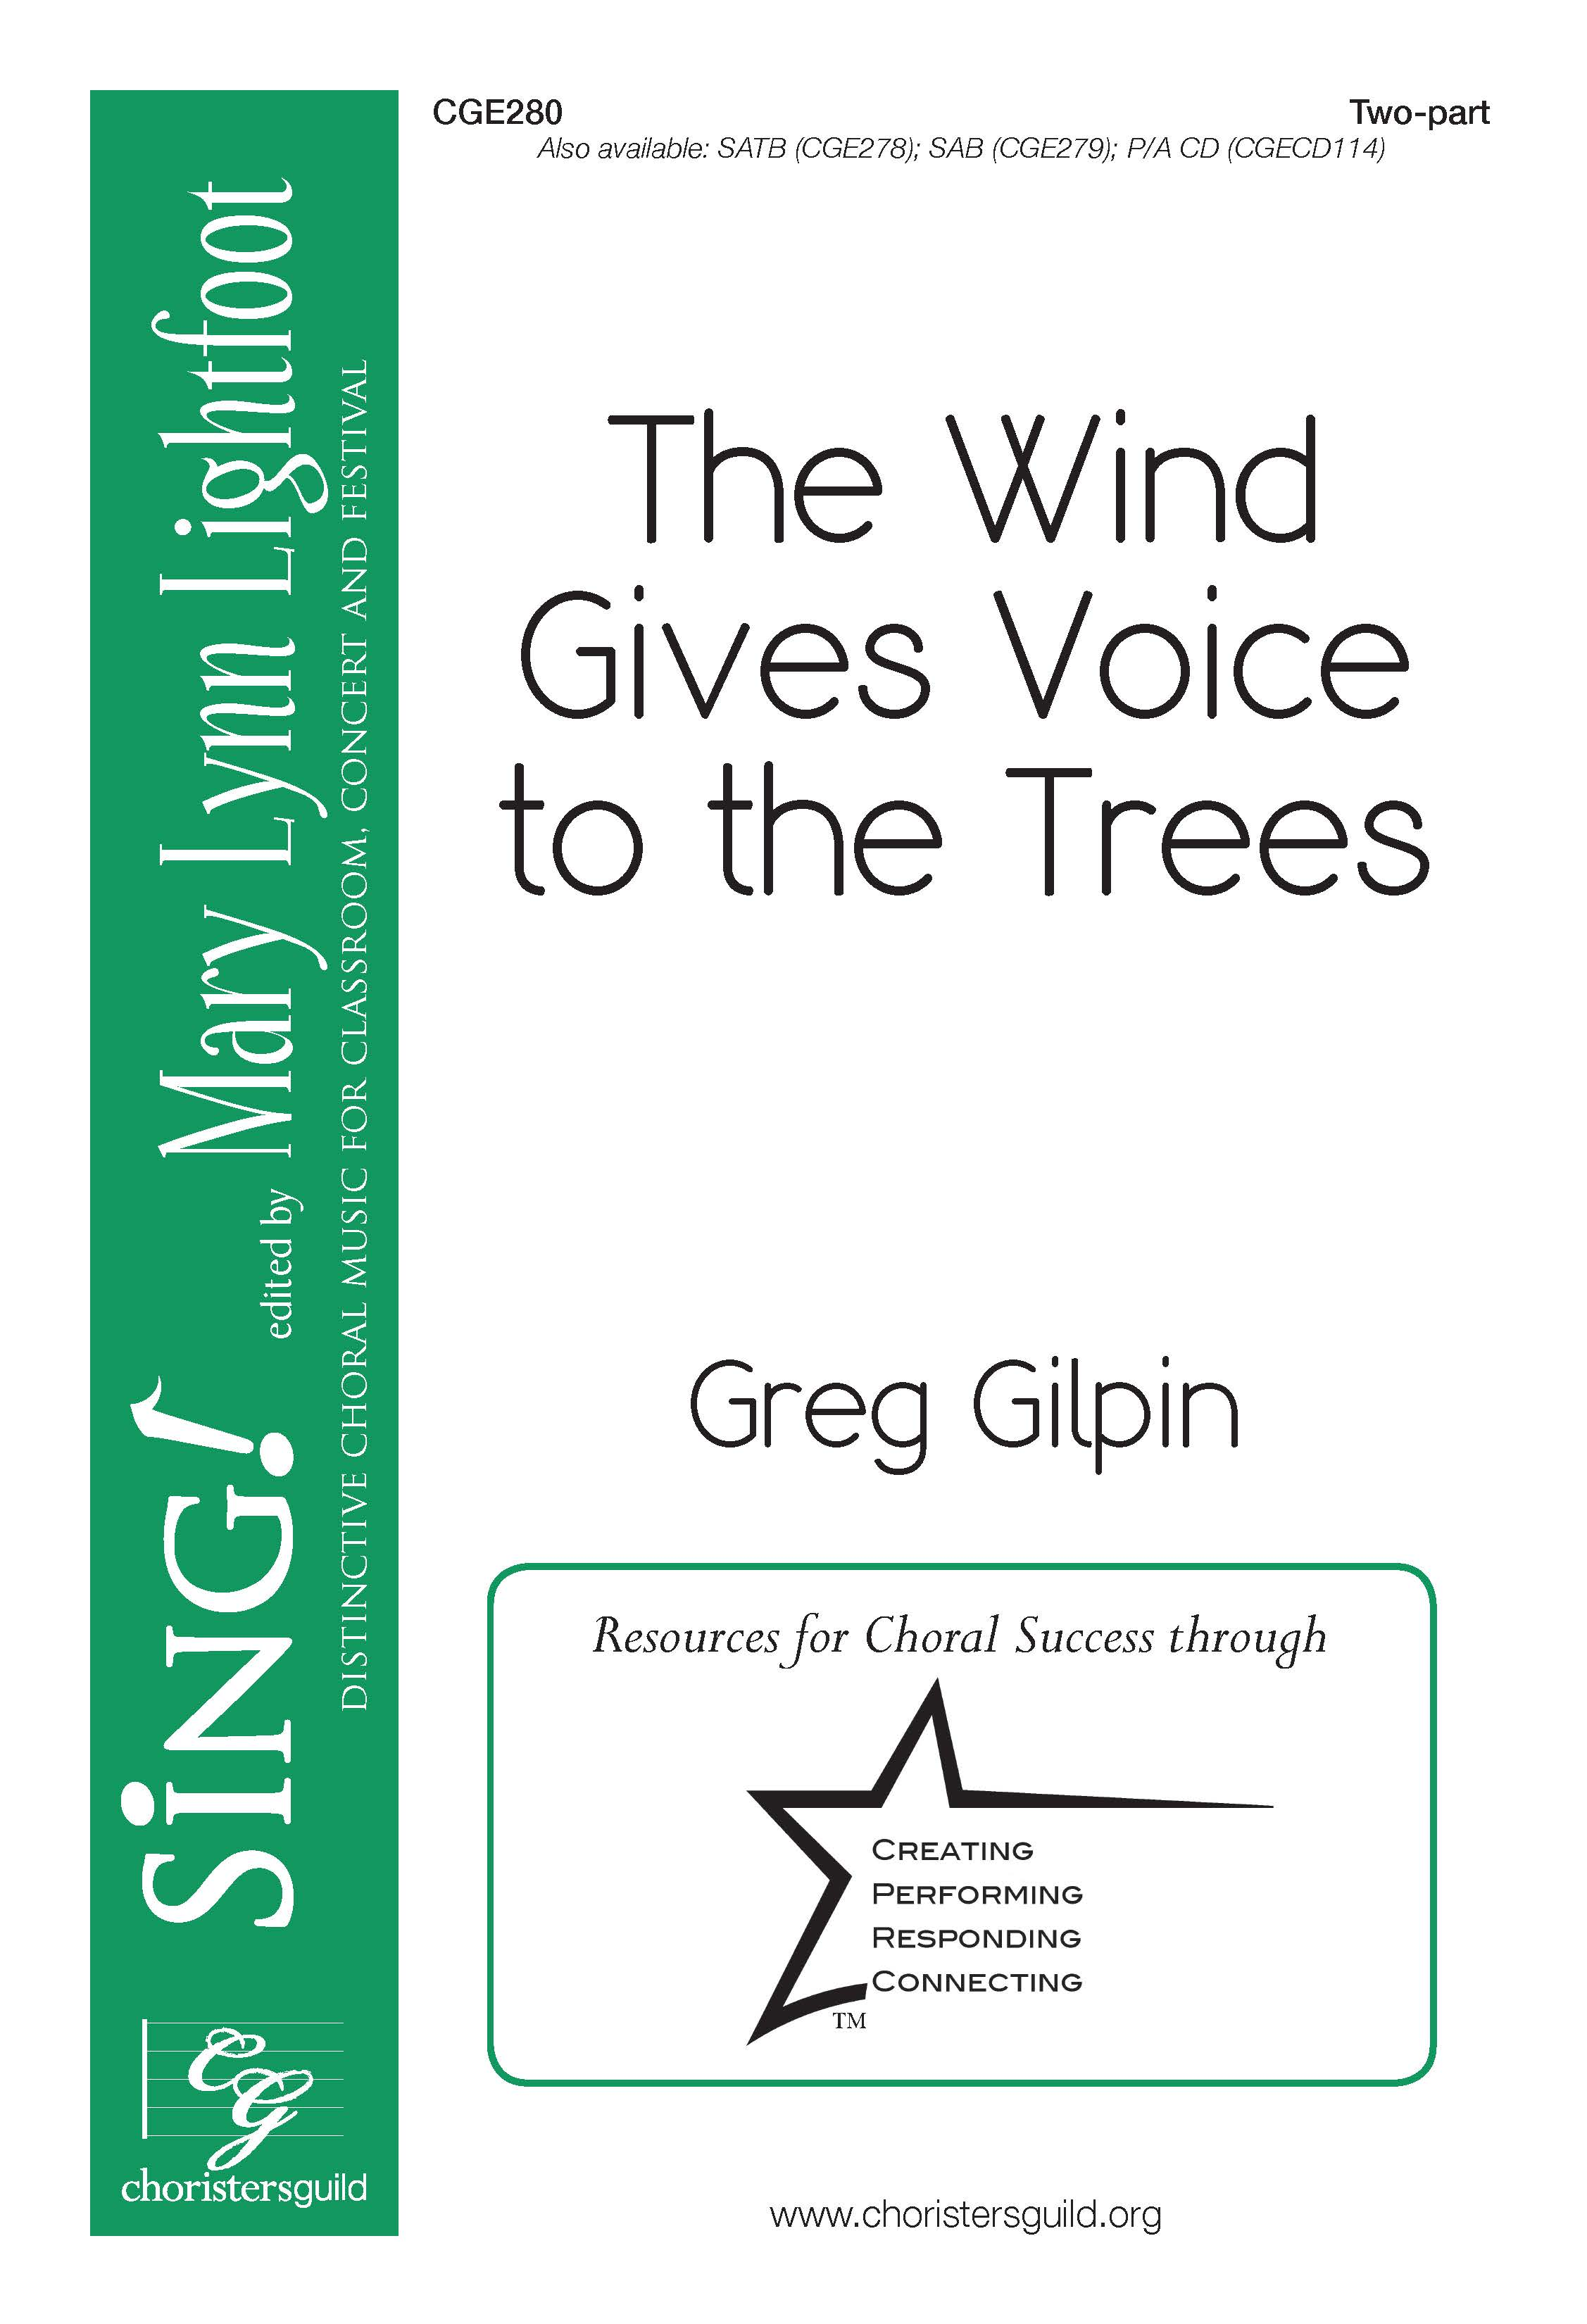 The Wind Gives Voice to the Trees Two-part